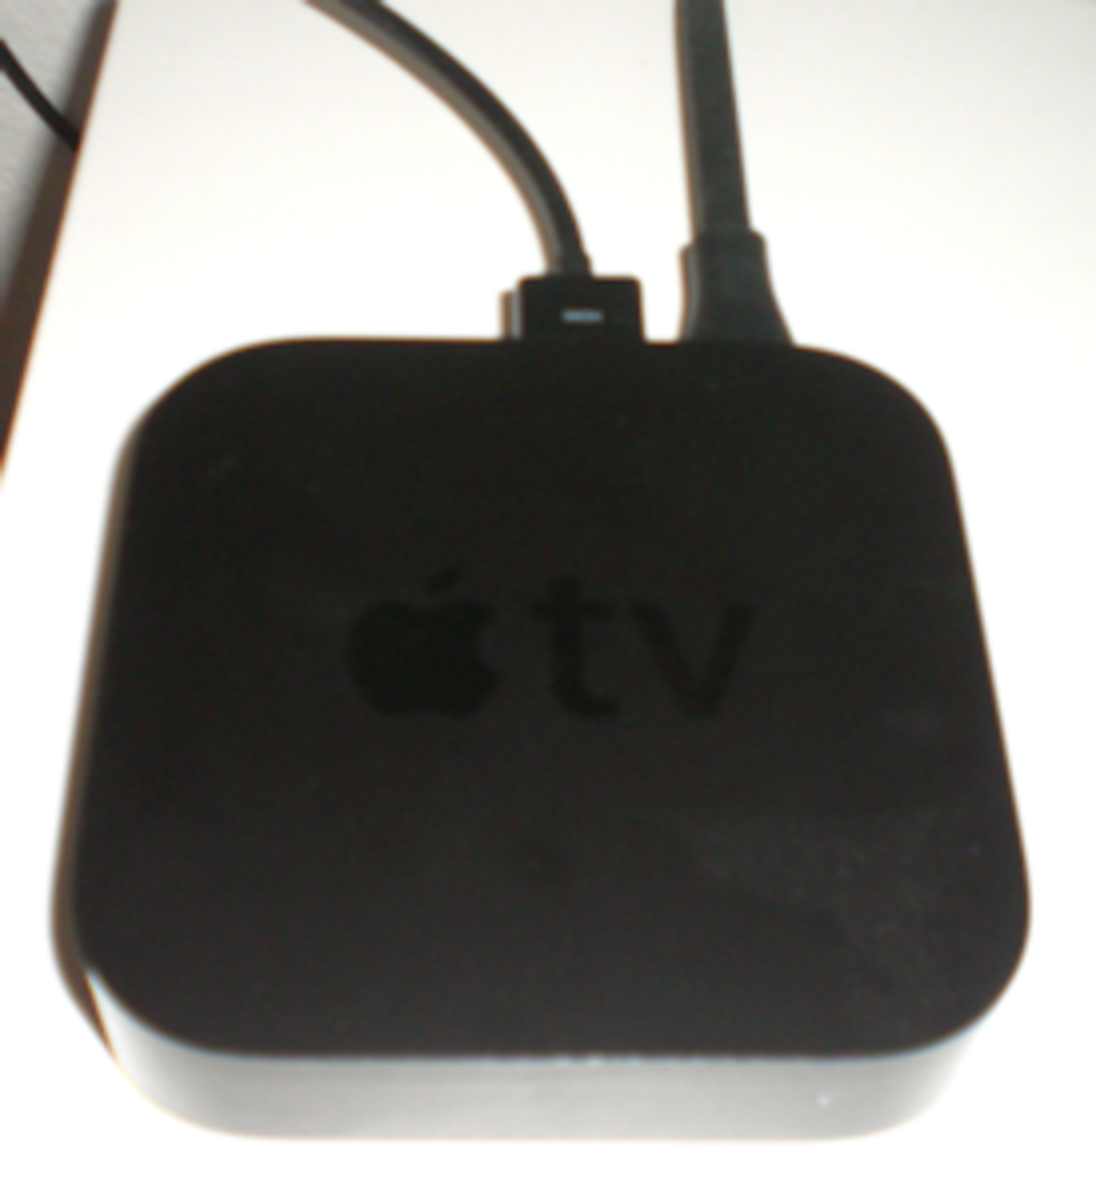 Apple TV in use.